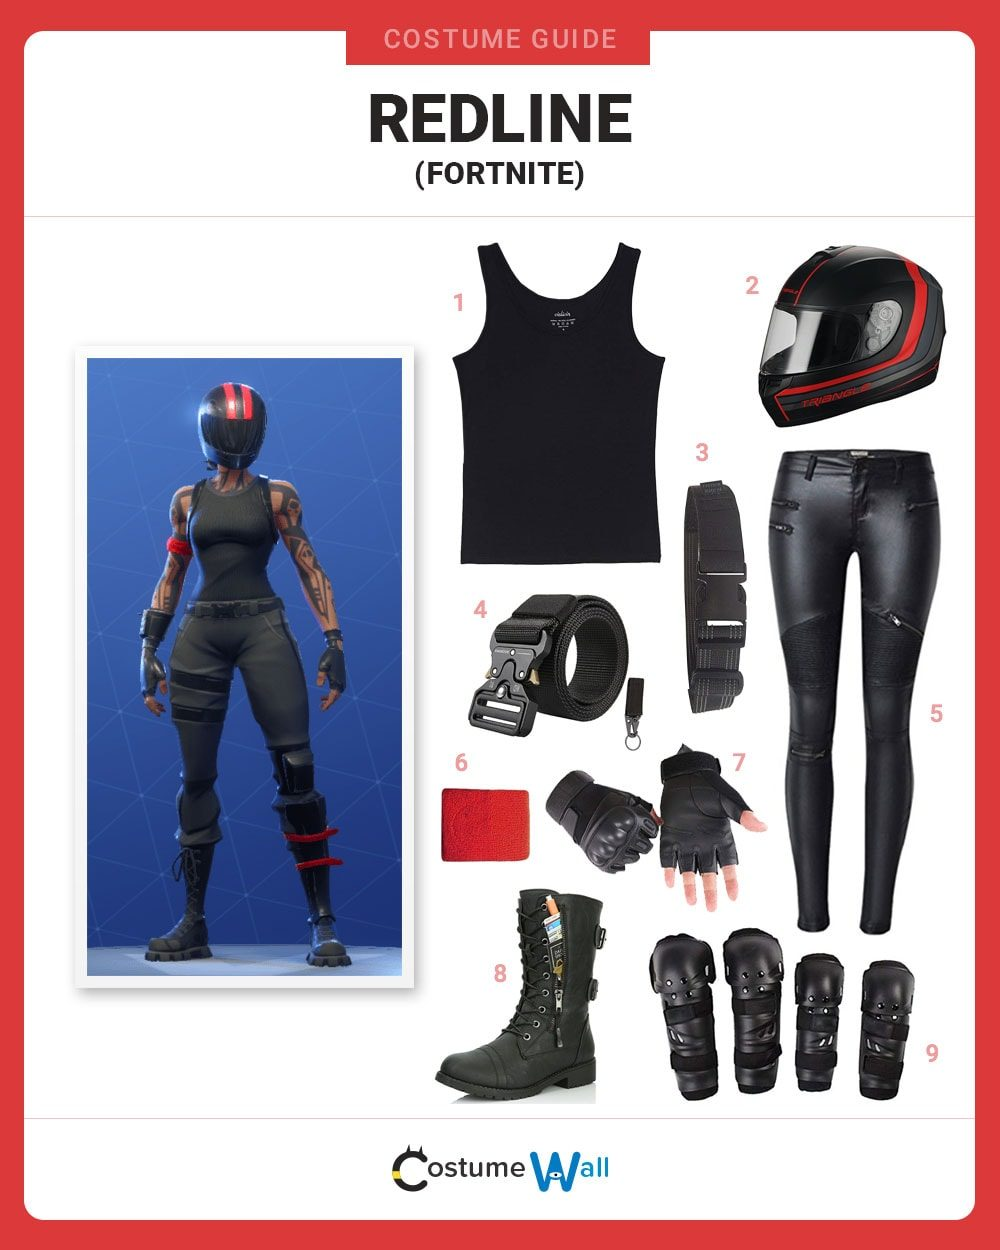 Dress Like Redline From Fortnite Costume Halloween And Cosplay Guides